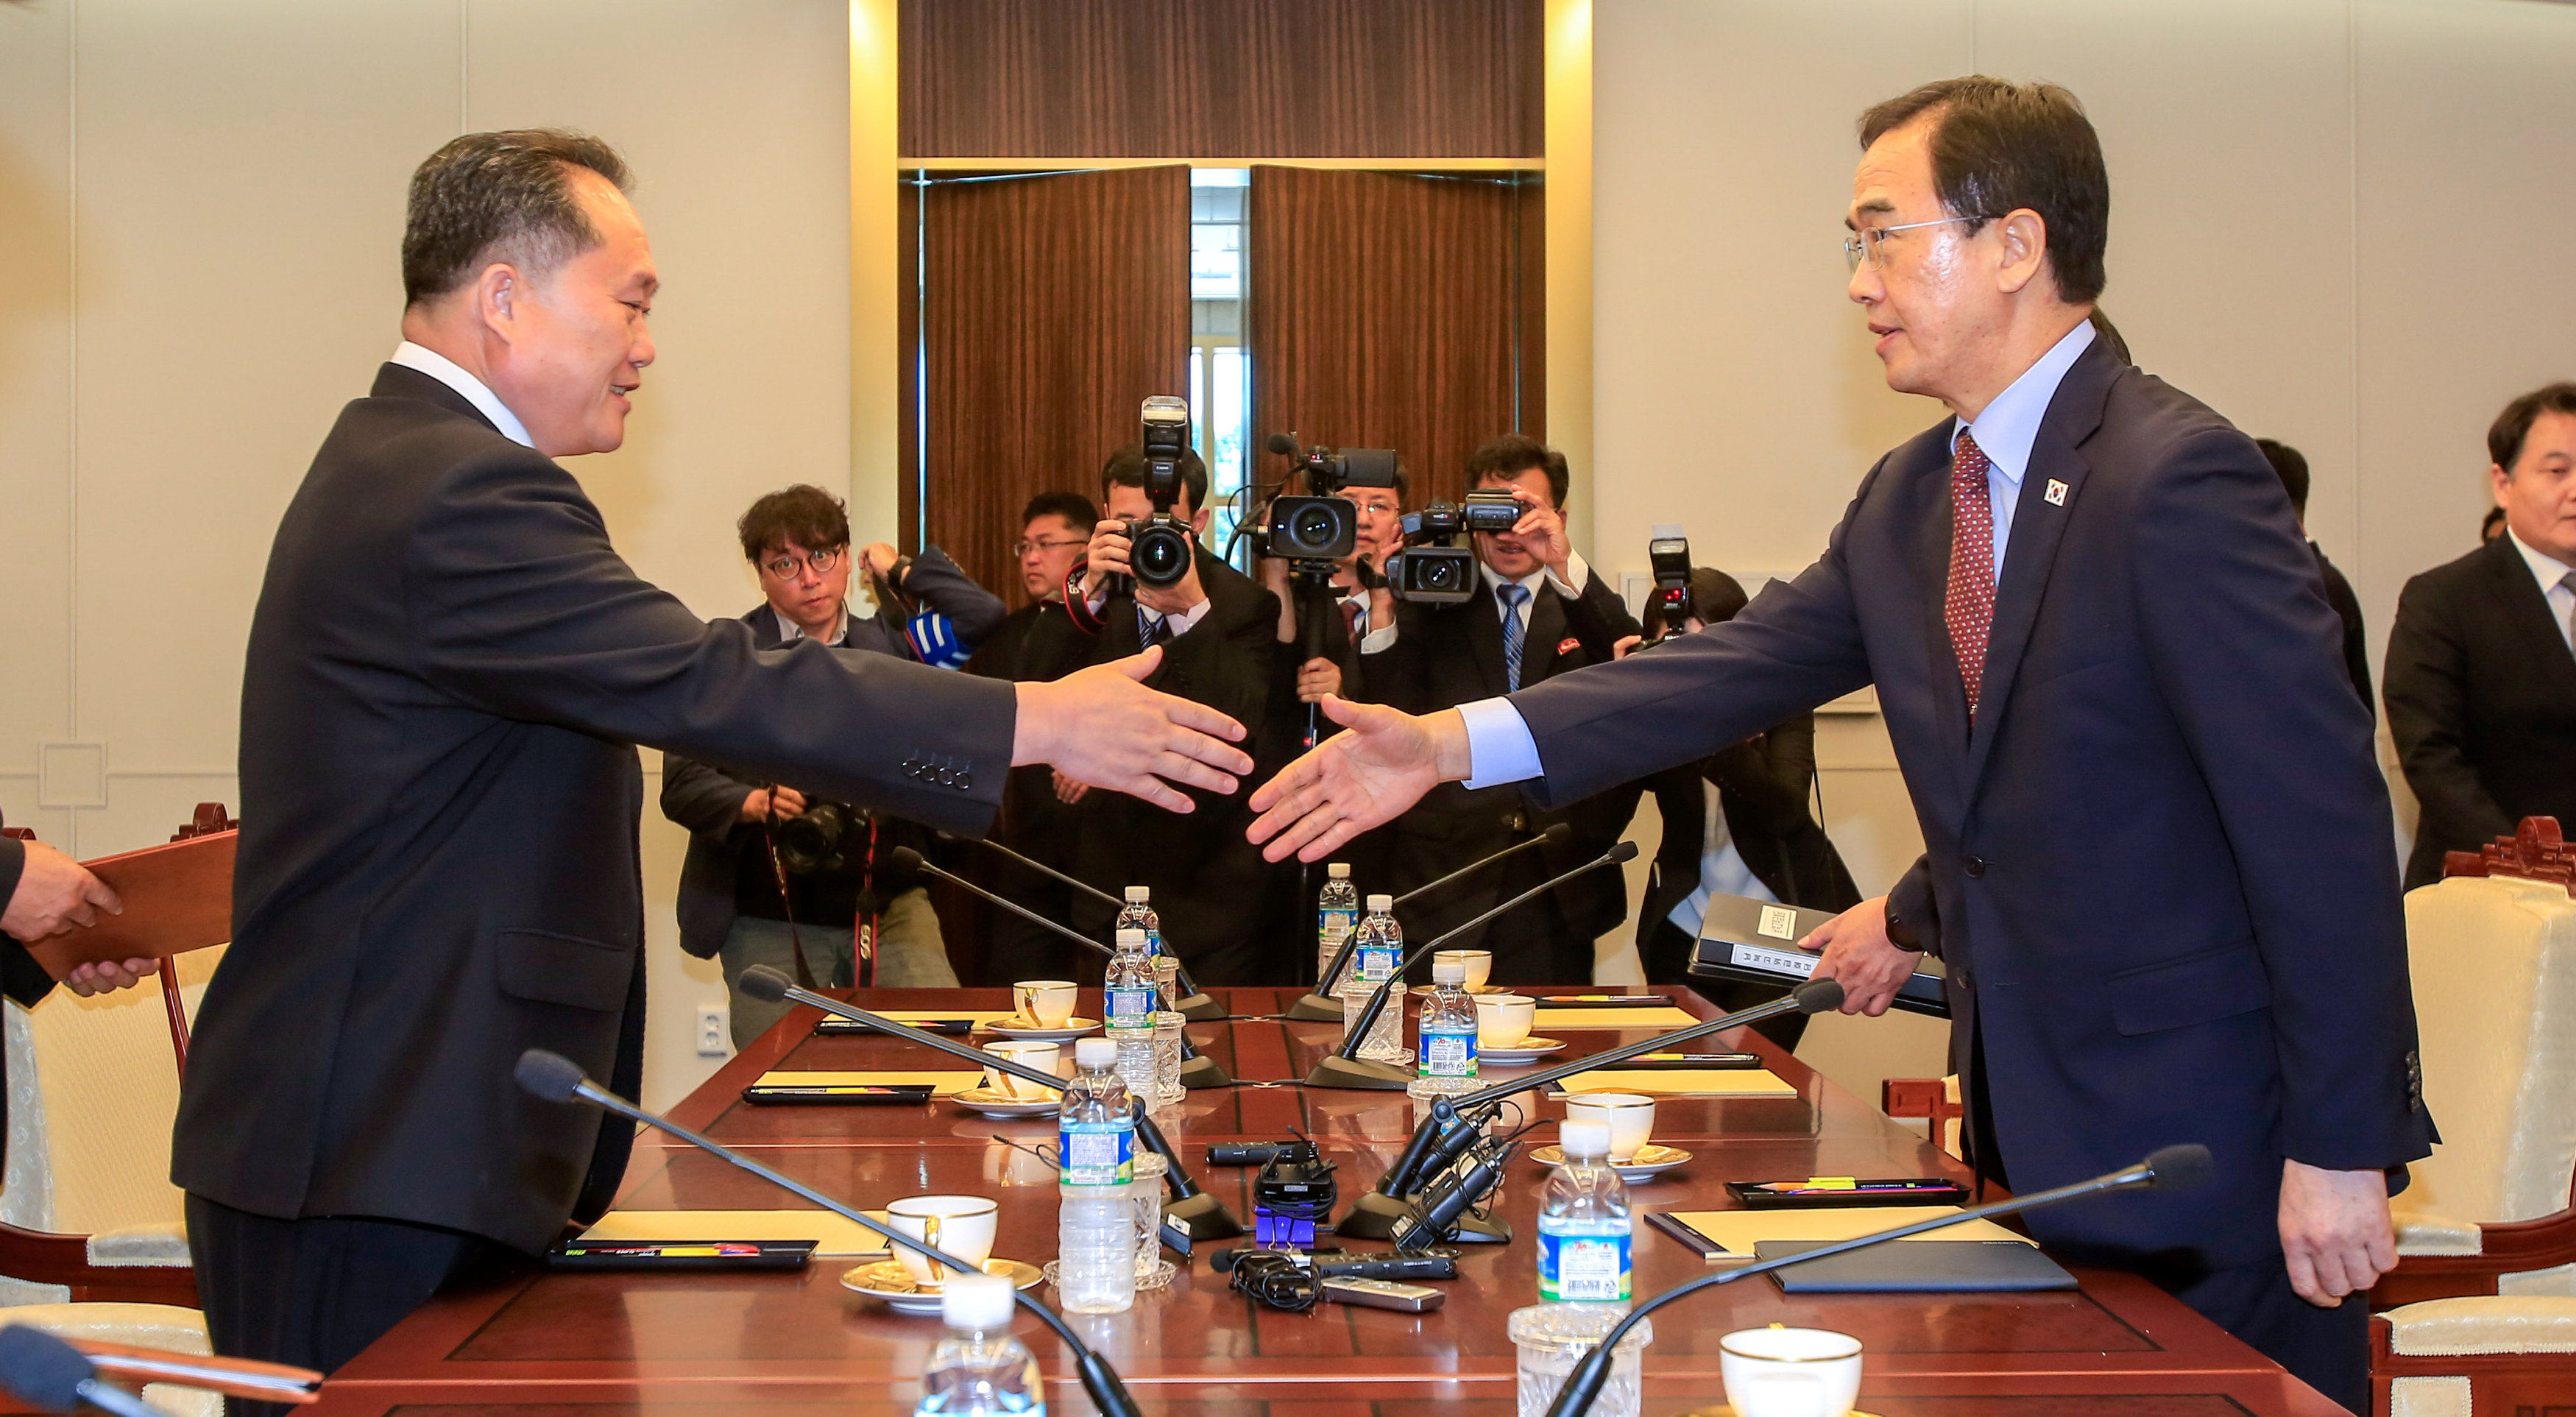 South Korean Unification Minister Cho Myoung-gyon shakes hands with his North Korean counterpart Ri Son Gwon during their meeting at the truce village of Panmunjom, South Korea, June 1, 2018. Yonhap via REUTERS